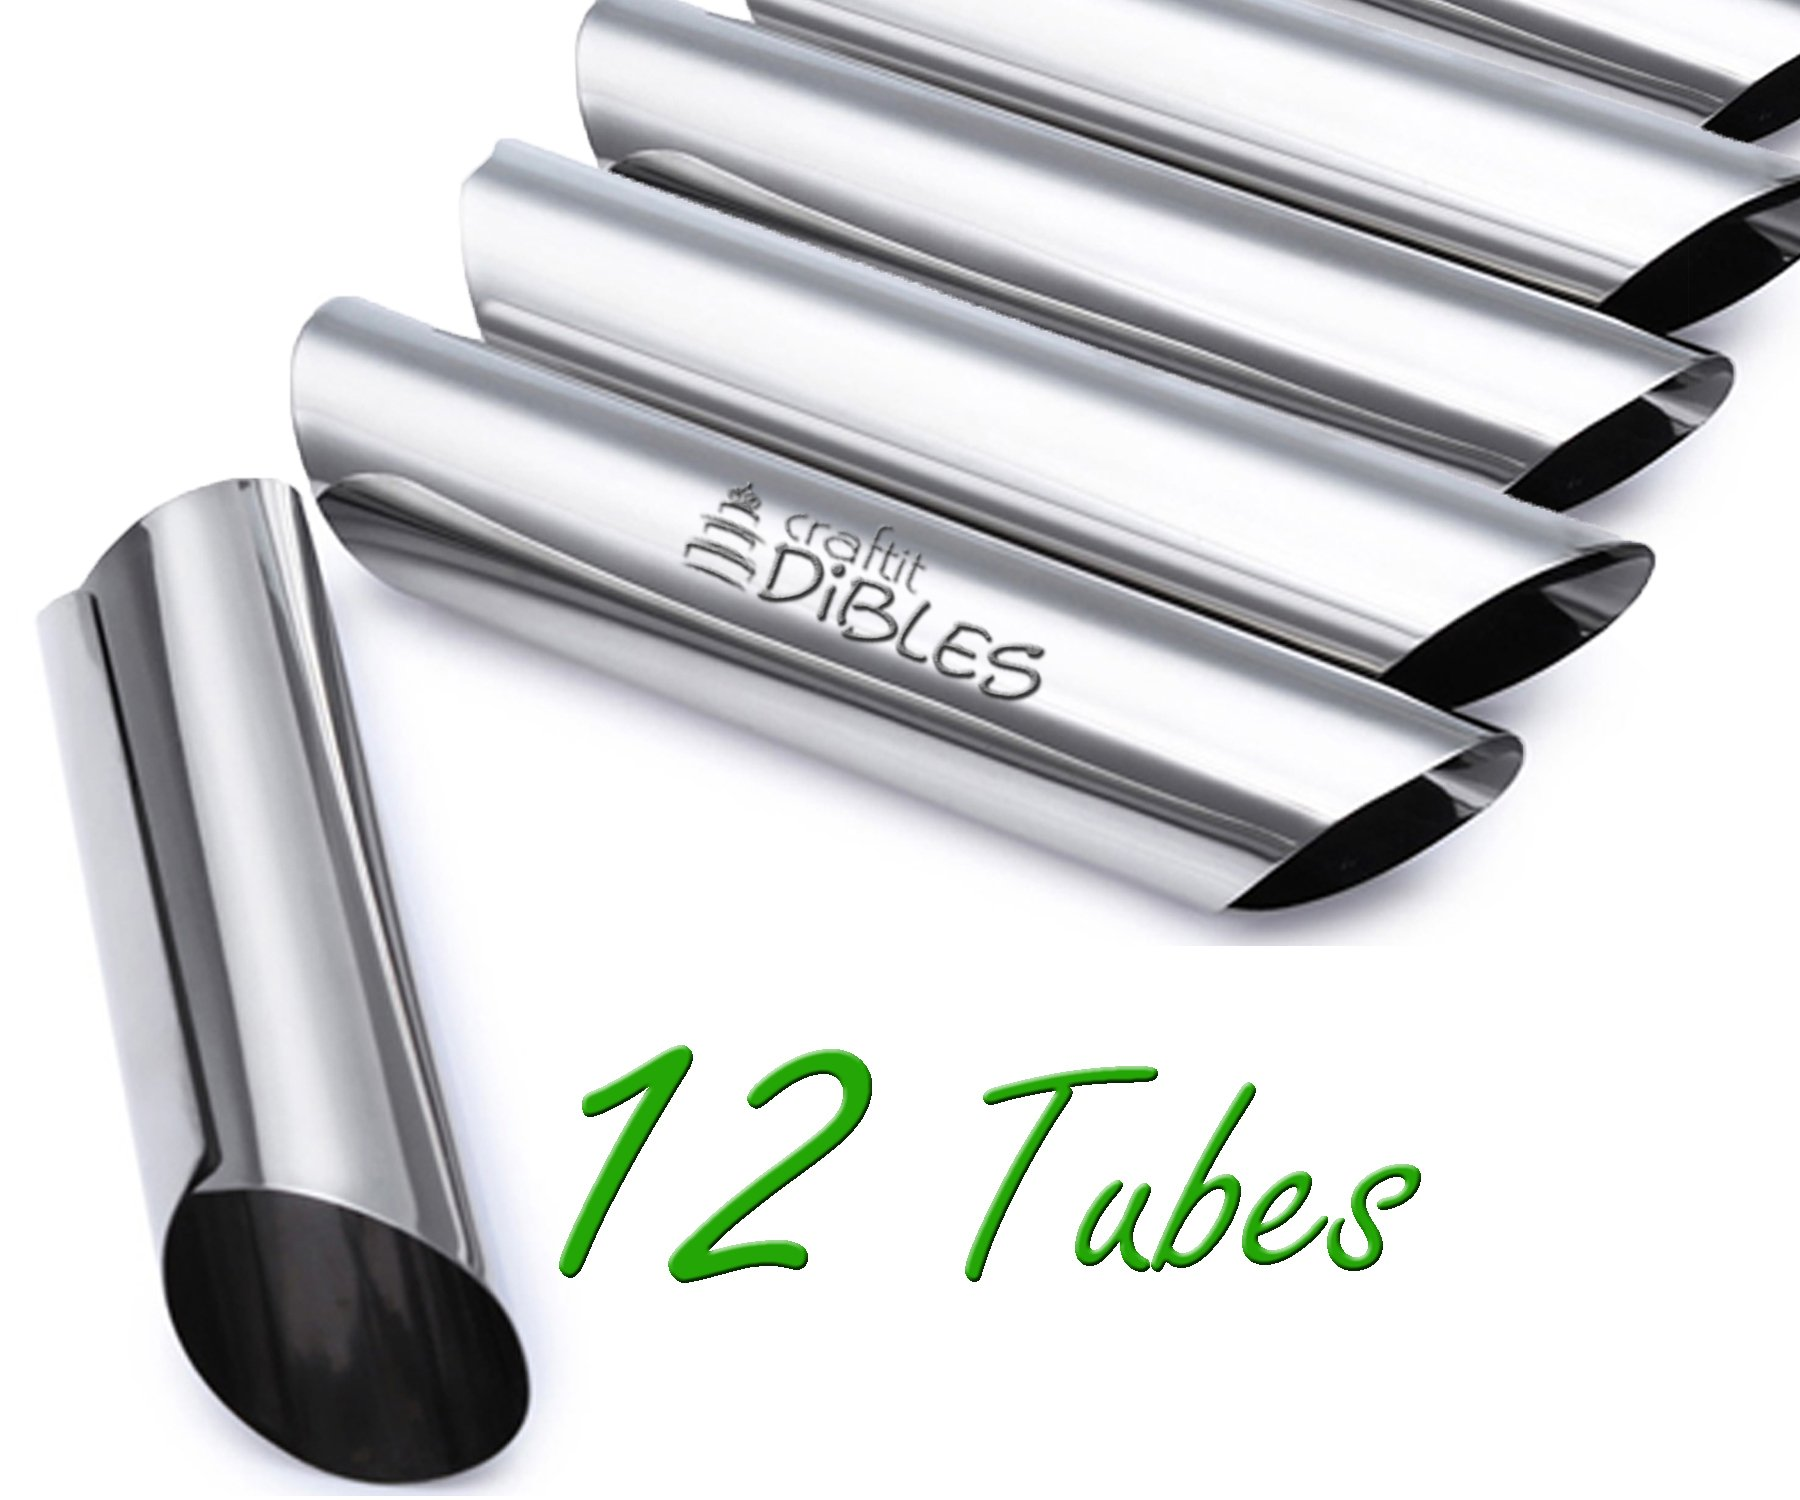 Cannoli Tubes by CiE. Set of 12 stainless steel Cannoli Forms pastry molds. Diagonal shaped by Craftit Edibles